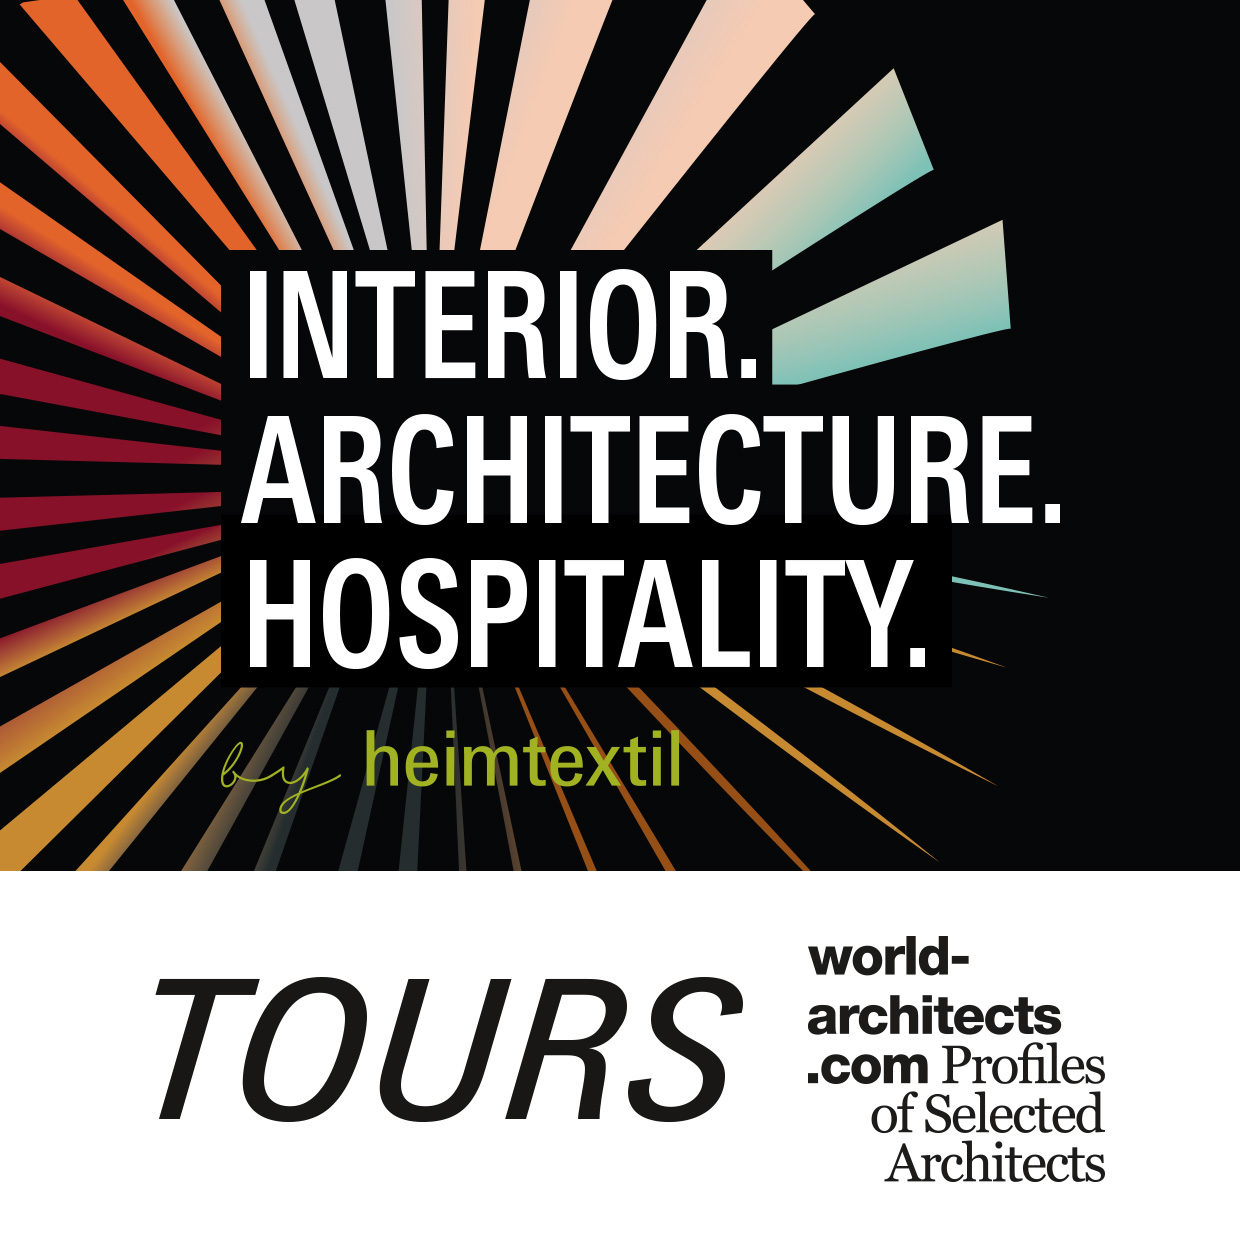 guided-tour-by-world-architects1